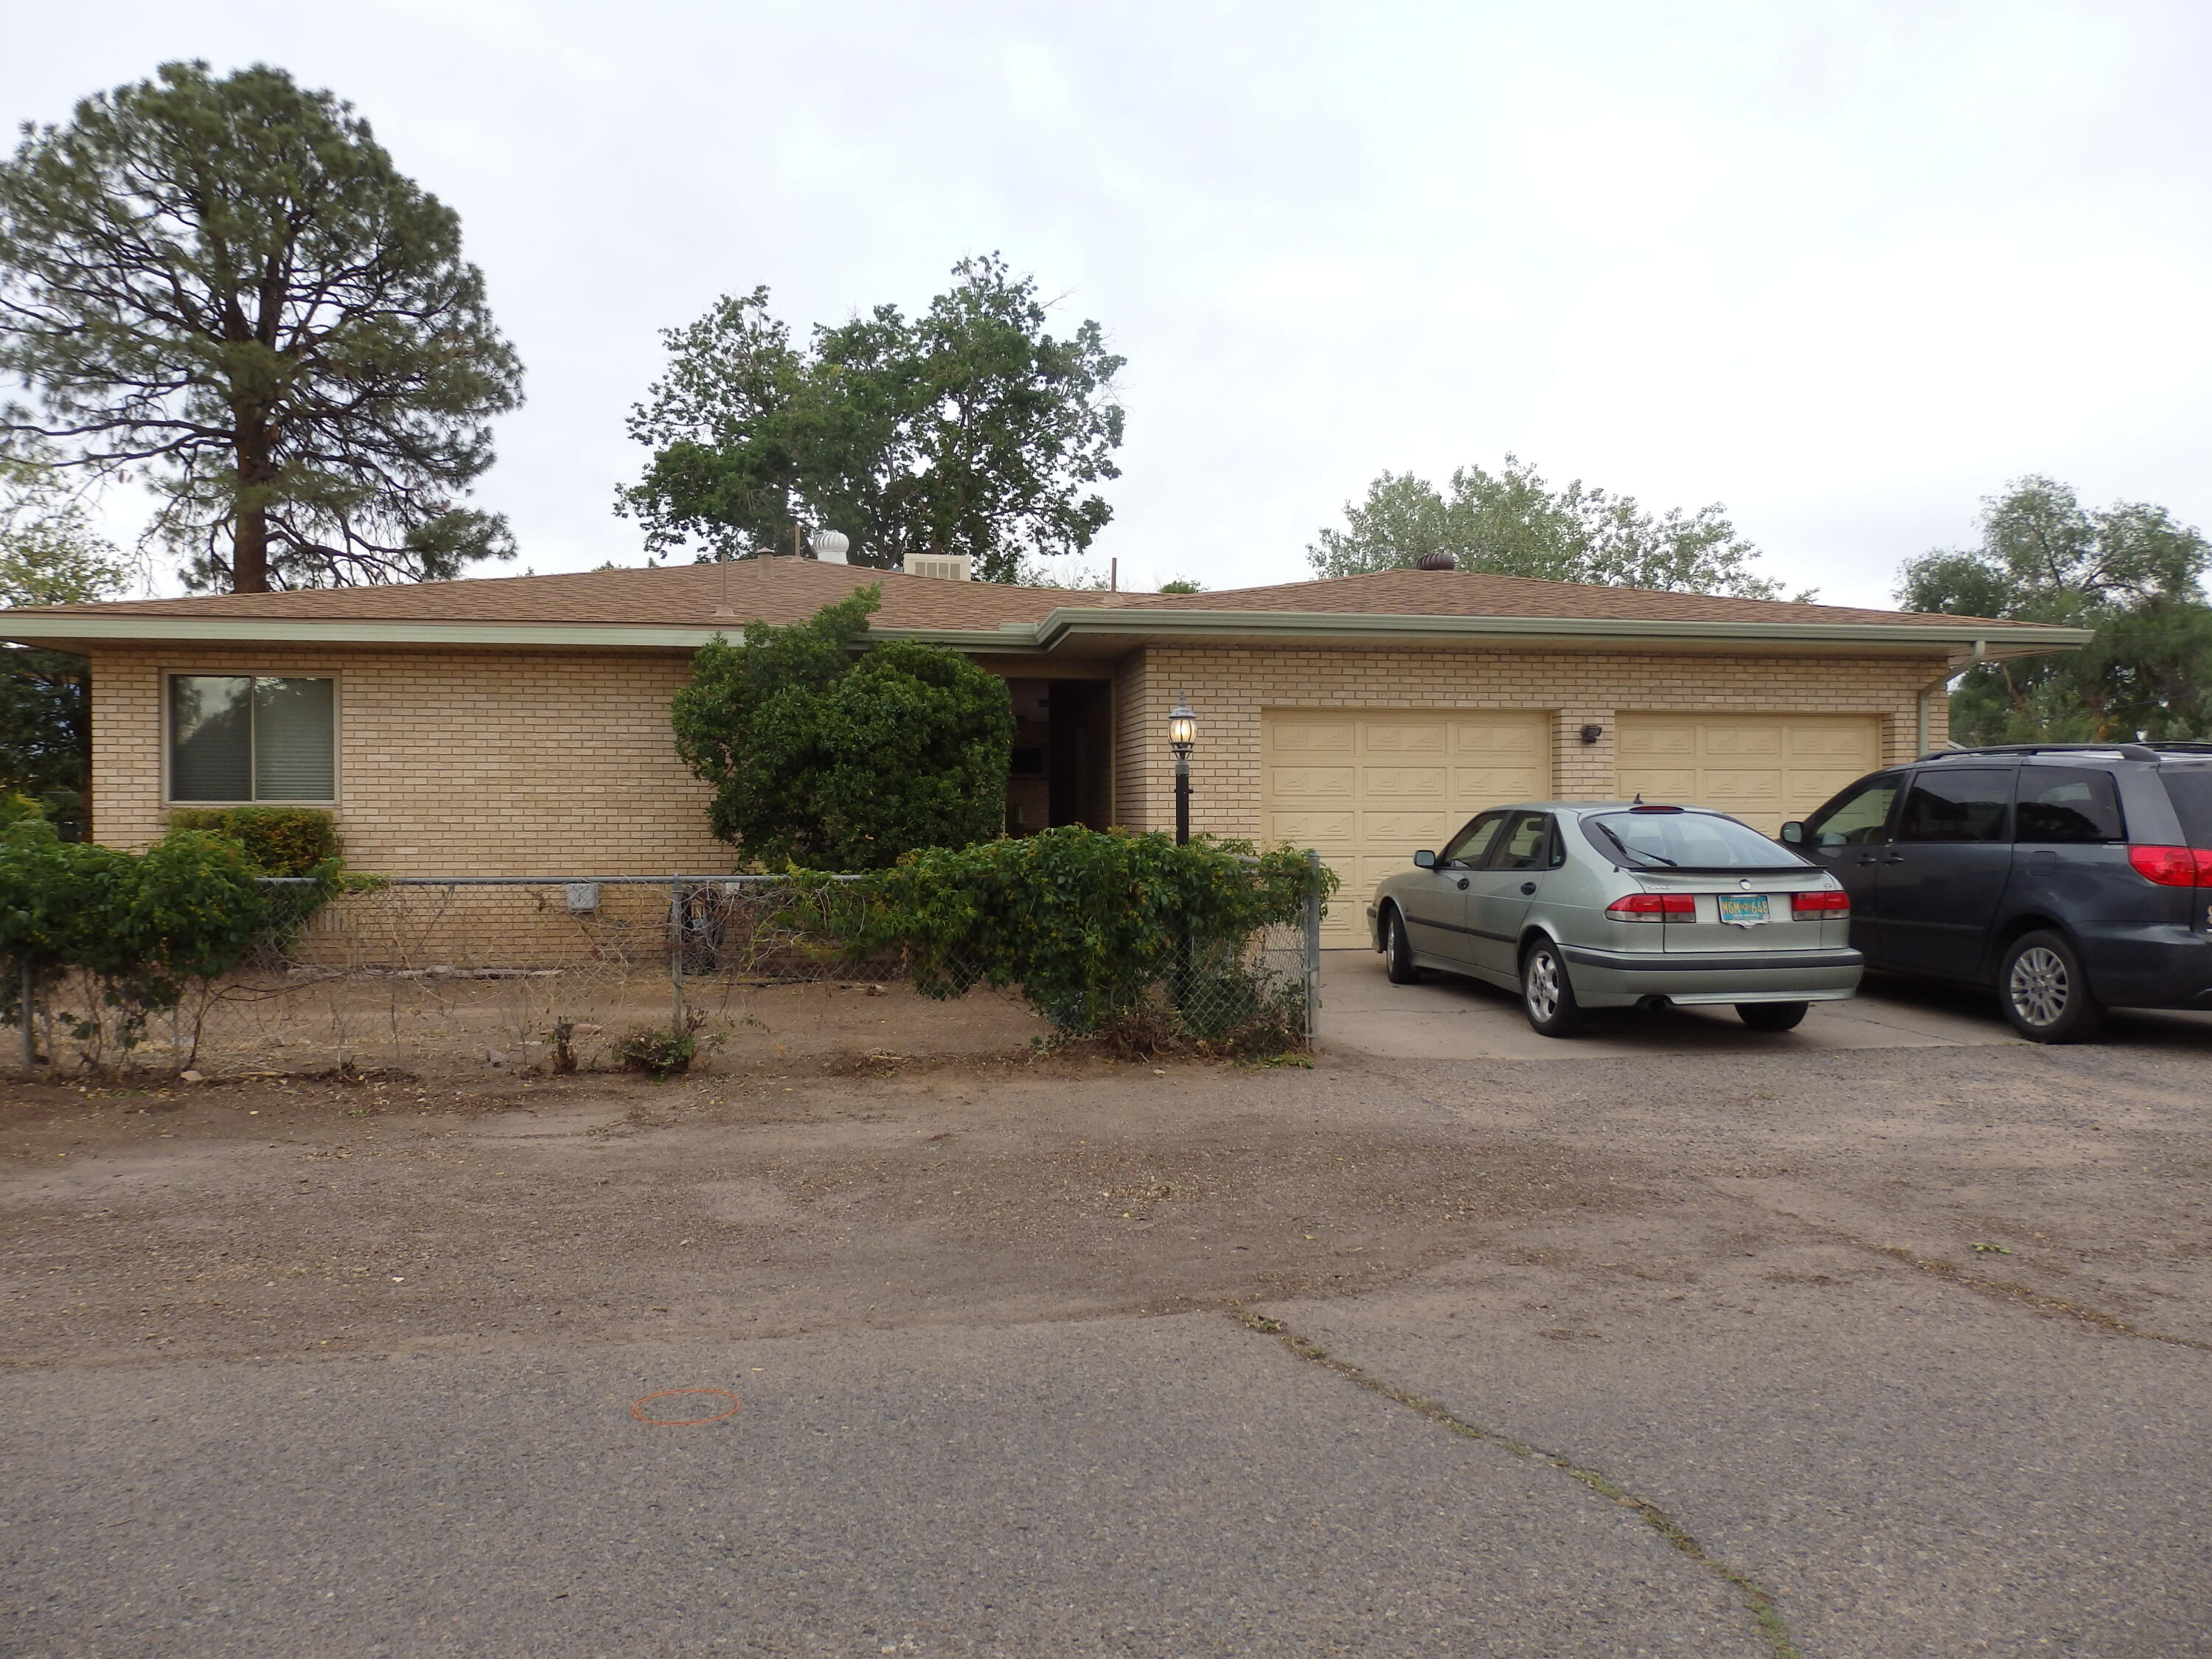 New Price. Large price reduction. Brick Ranch Style on almost a half acre corner lot in Los Ranchos. Ideal for bringing your Big Toys. Green house. Recent re roof, gutter system and soffitts.  Great family home in a delightful family area.